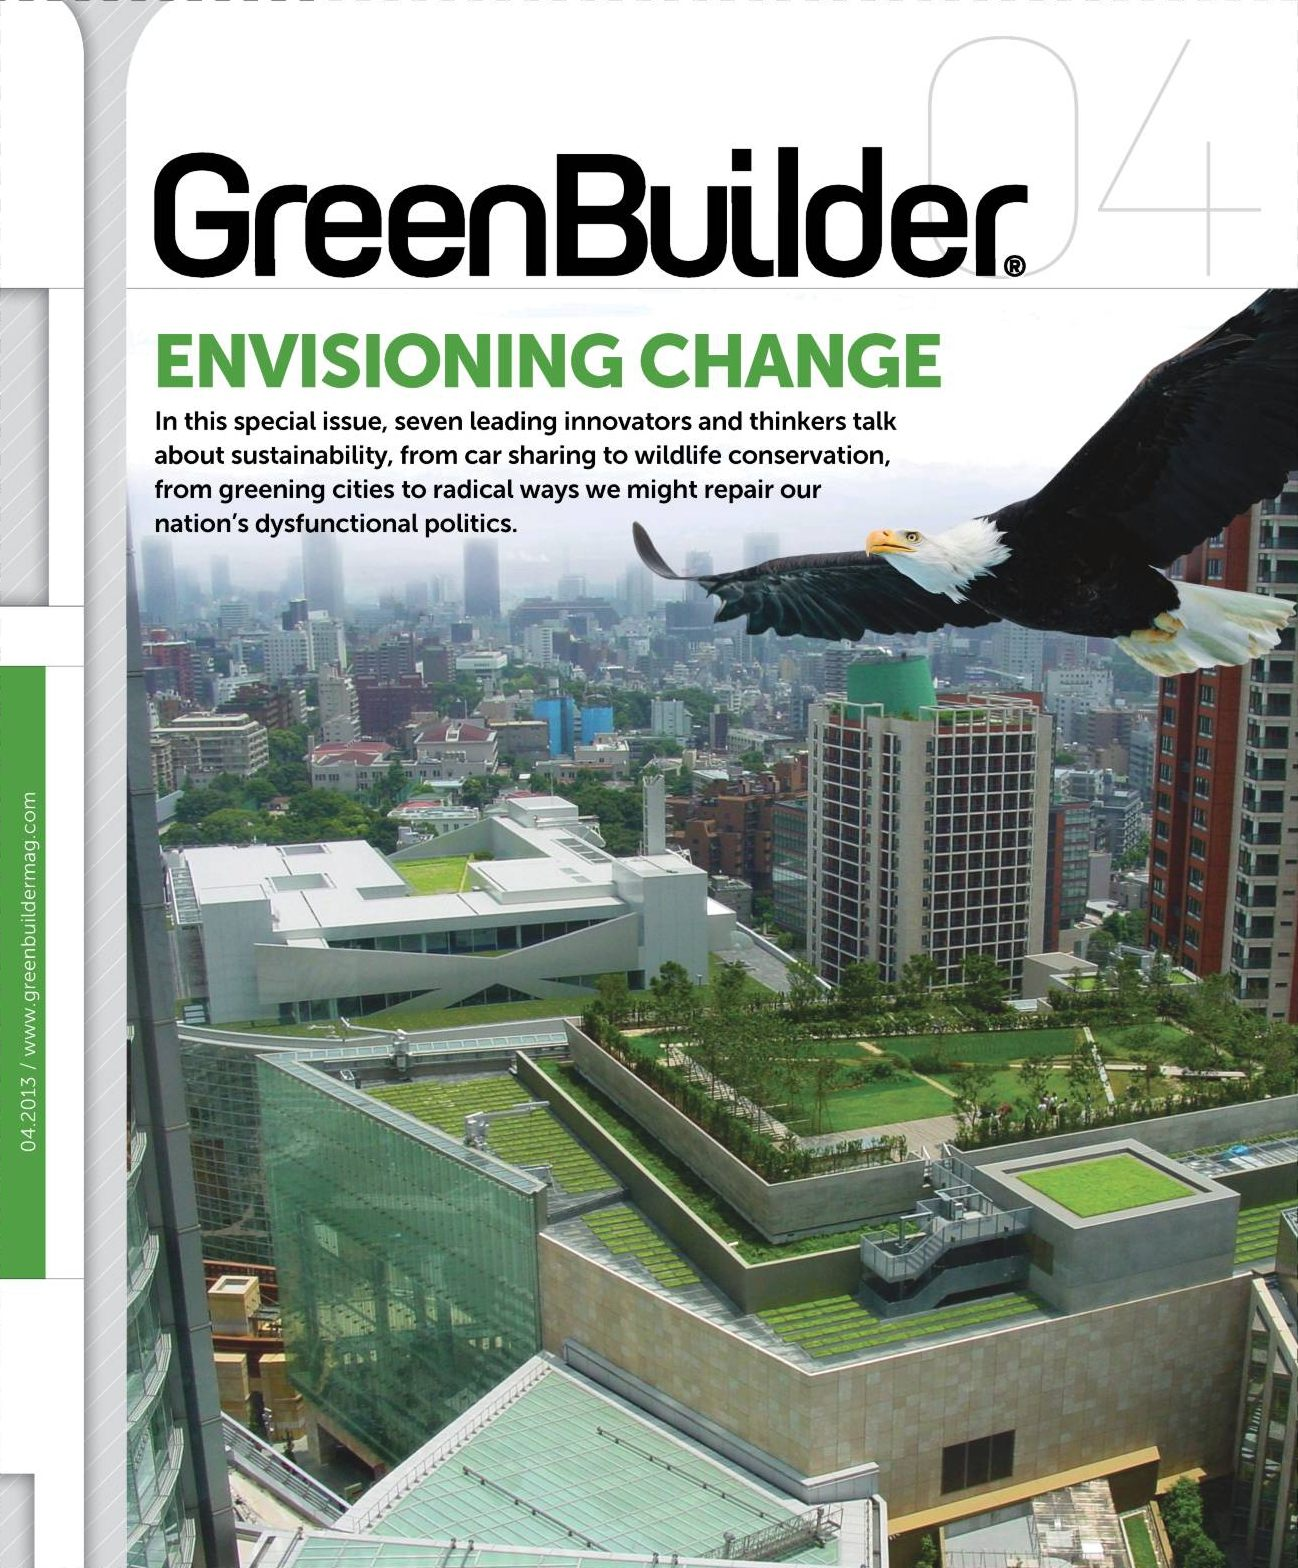 Green Builder magazine